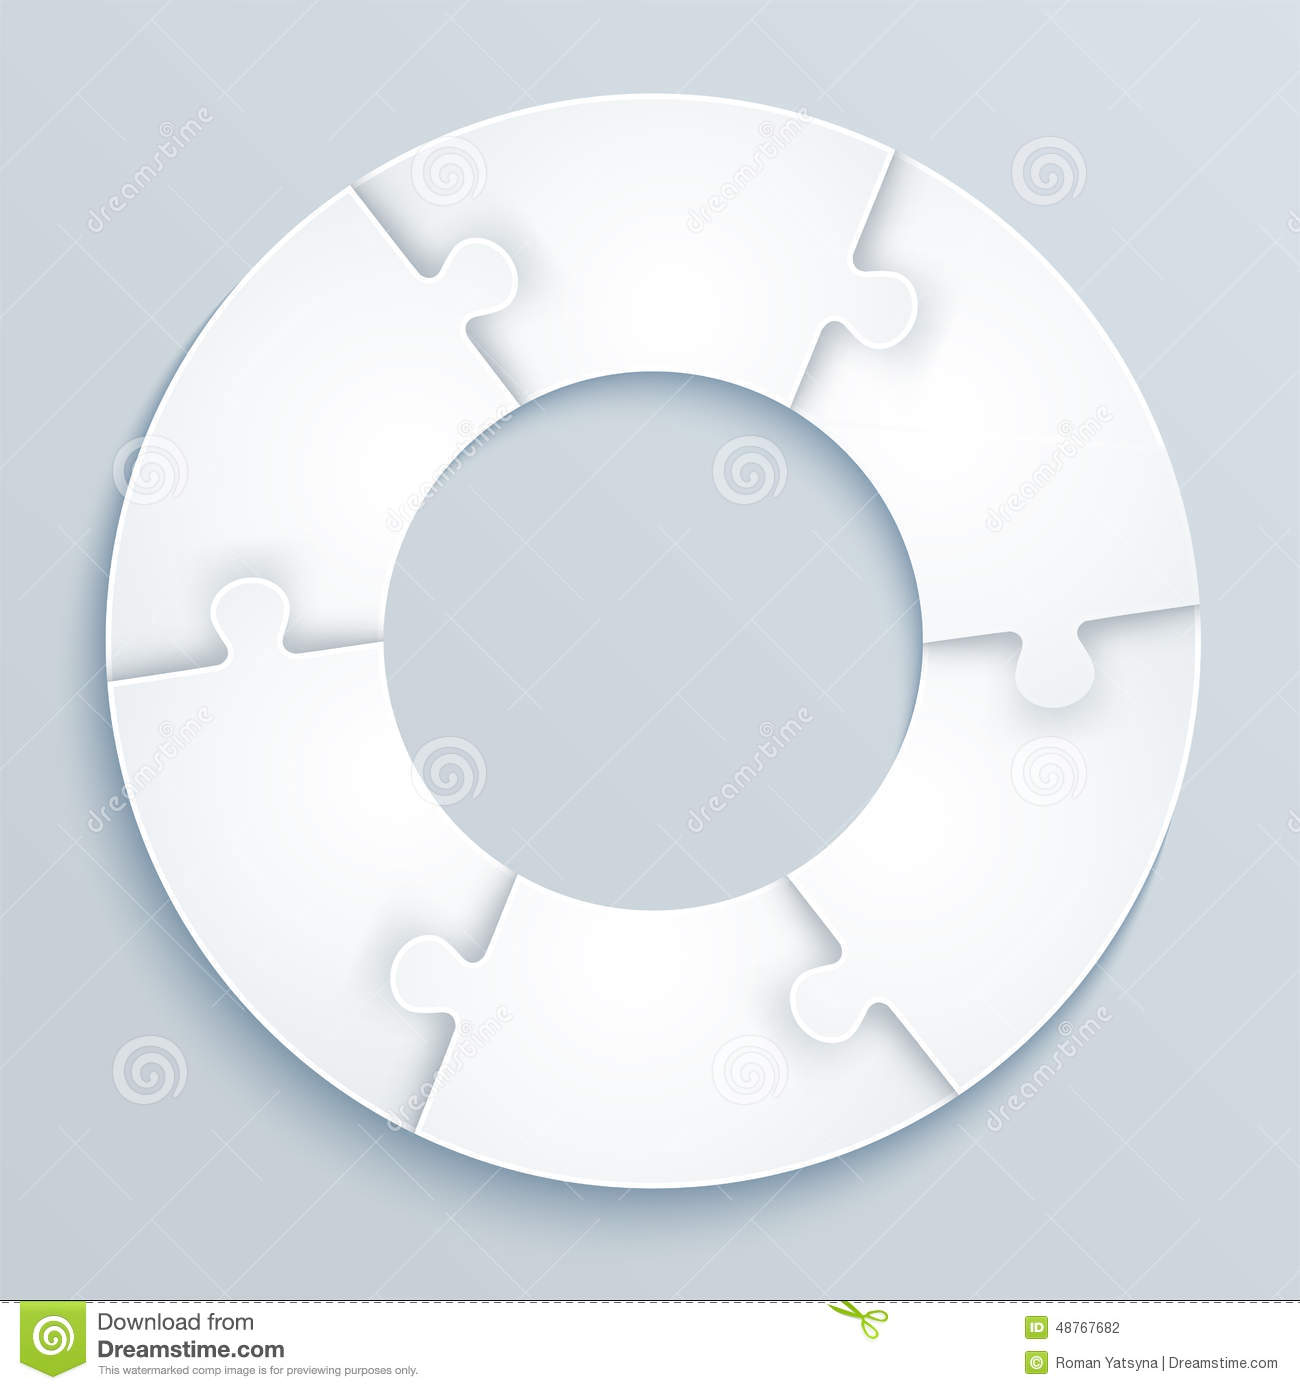 Parts Of Paper Puzzles In The Form Of A Circle Of 6 Pieces